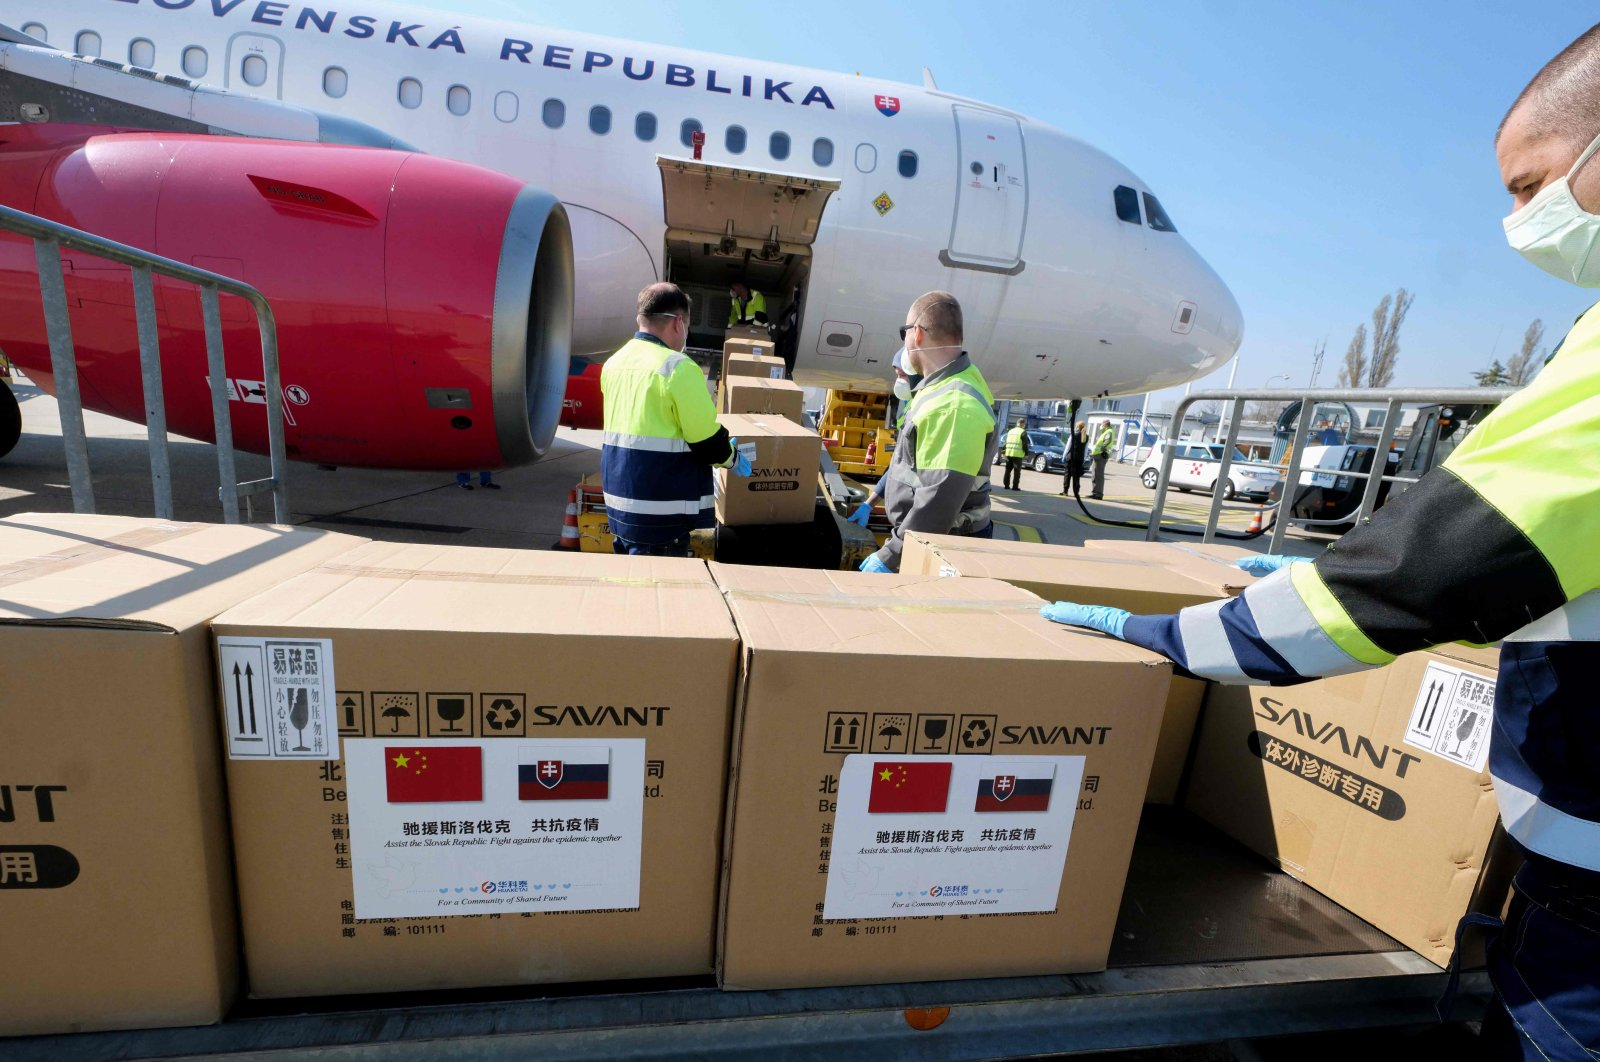 Slovak police officers unload a government Airbus-319, shortly after it arrived from Beijing, China, loaded with one hundred thousand of test kits for the novel coronavirus and one million face masks at M.R. Stefanilk airport, Bratislava, March 19, 2020. (AFP Photo)